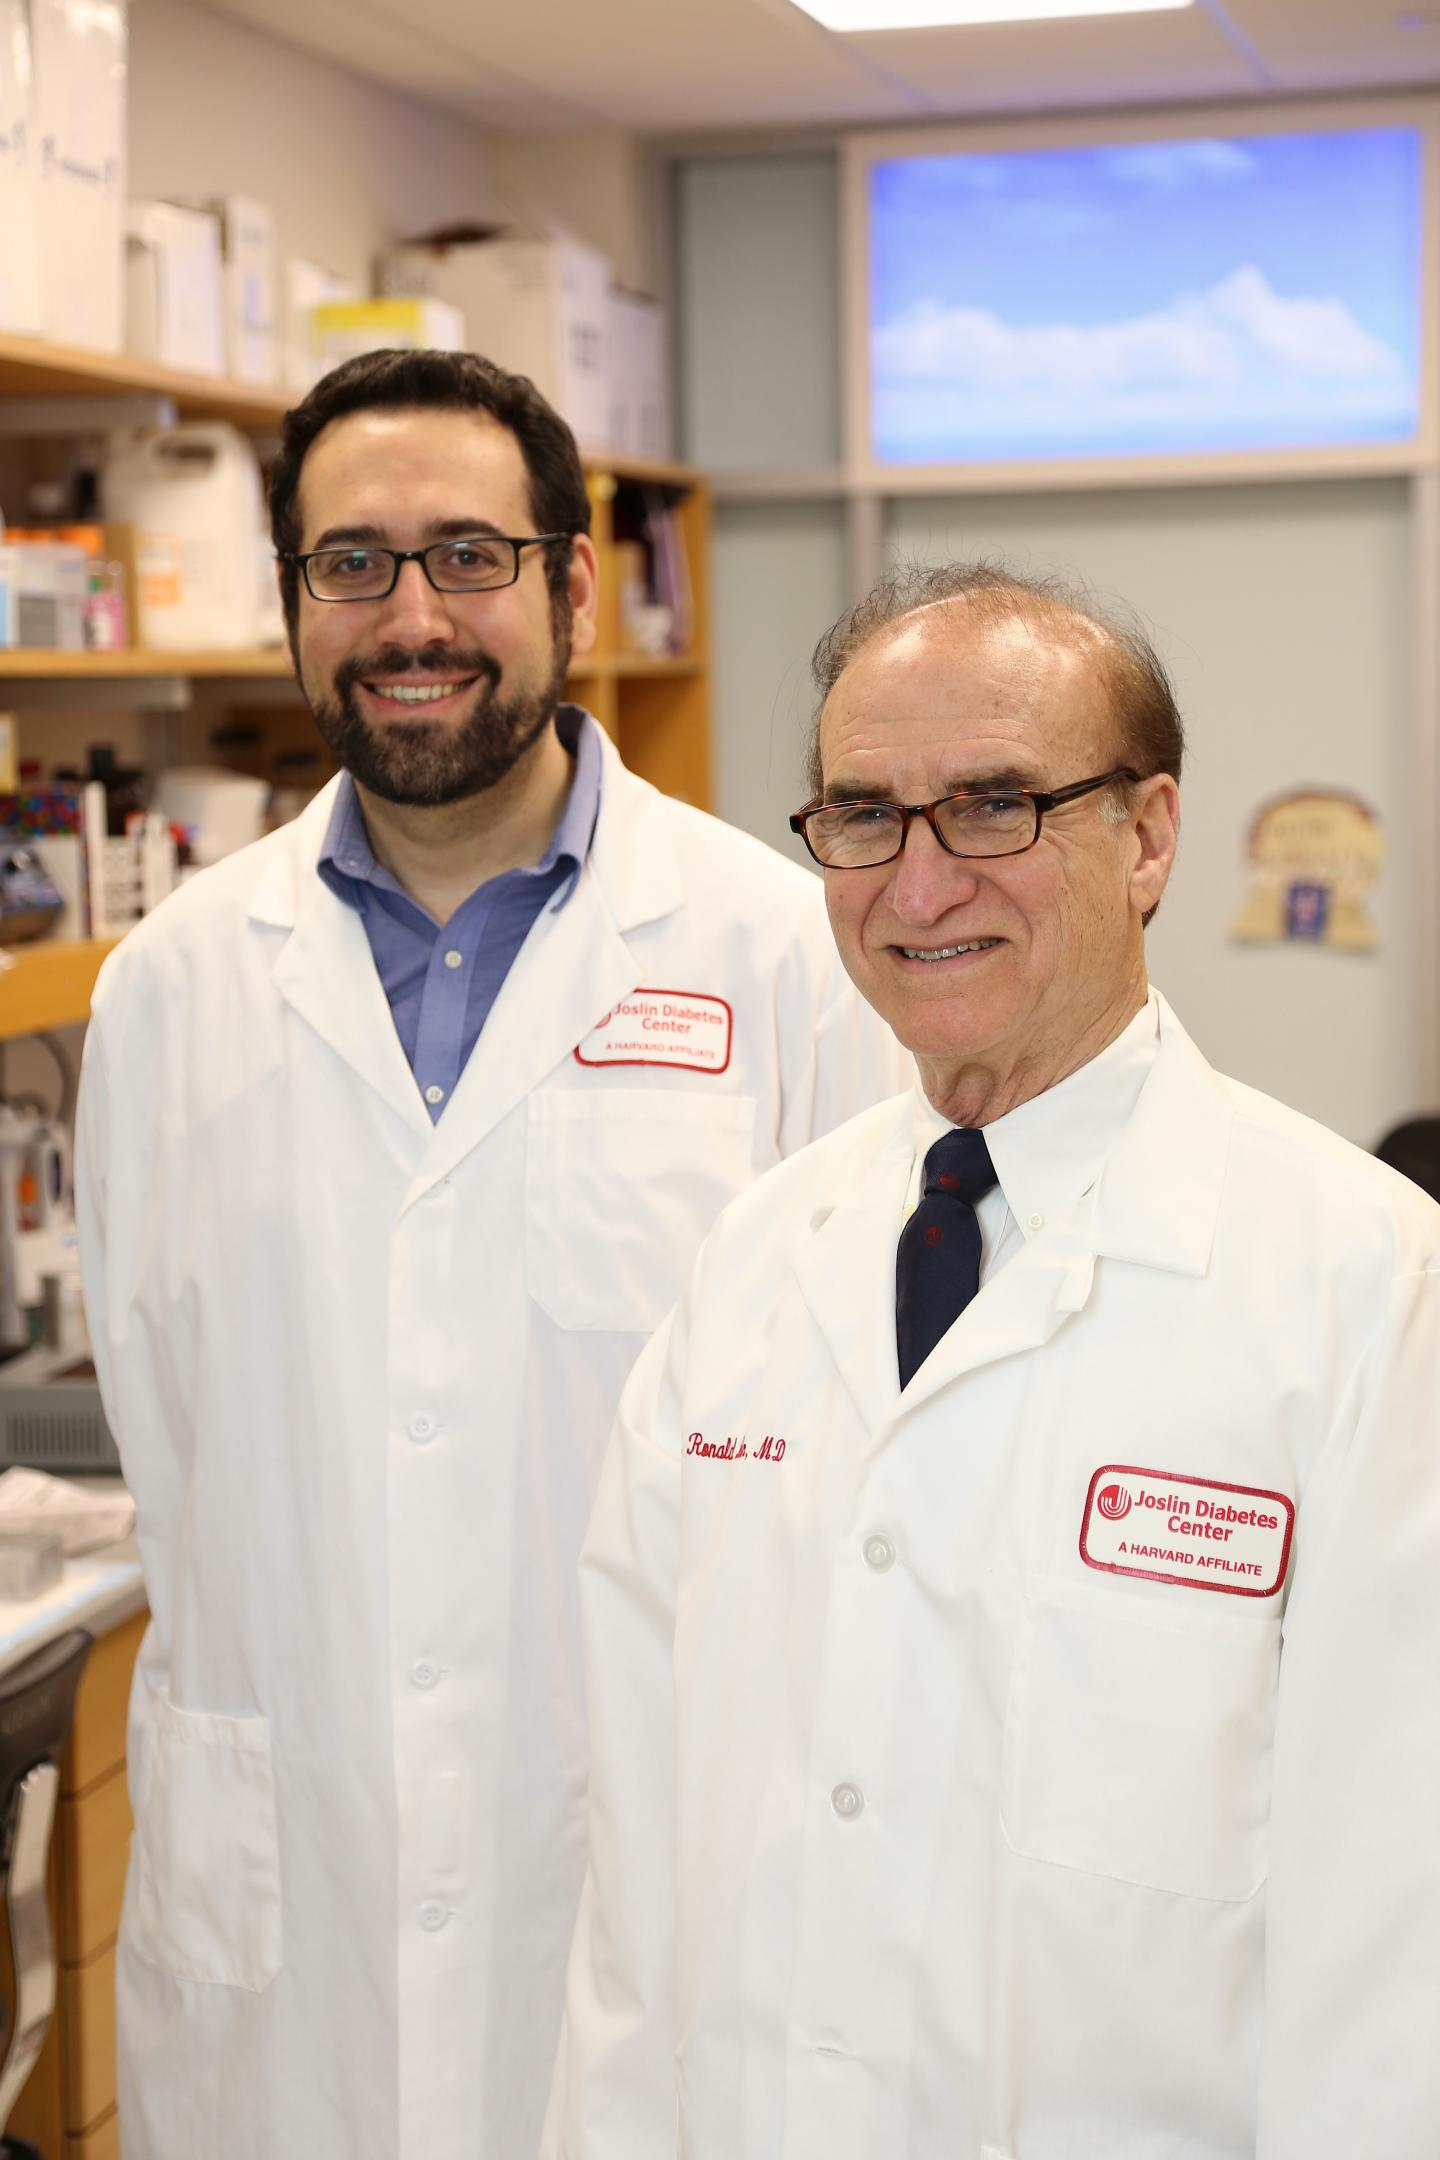 Emrah Altindis, PhD, research fellow in the section on Integrative Physiology And Metabolism at Joslin Diabetes Center, and C. Ronald Kahn, MD, Senior Investigator, Head of the Section on Integrative Physiology and Metabolism and Chief Academic Officer at Joslin Diabetes Center and the Mary K. Iacocca Professor of Medicine at Harvard Medical School  / Credit: Stephanie McPherson